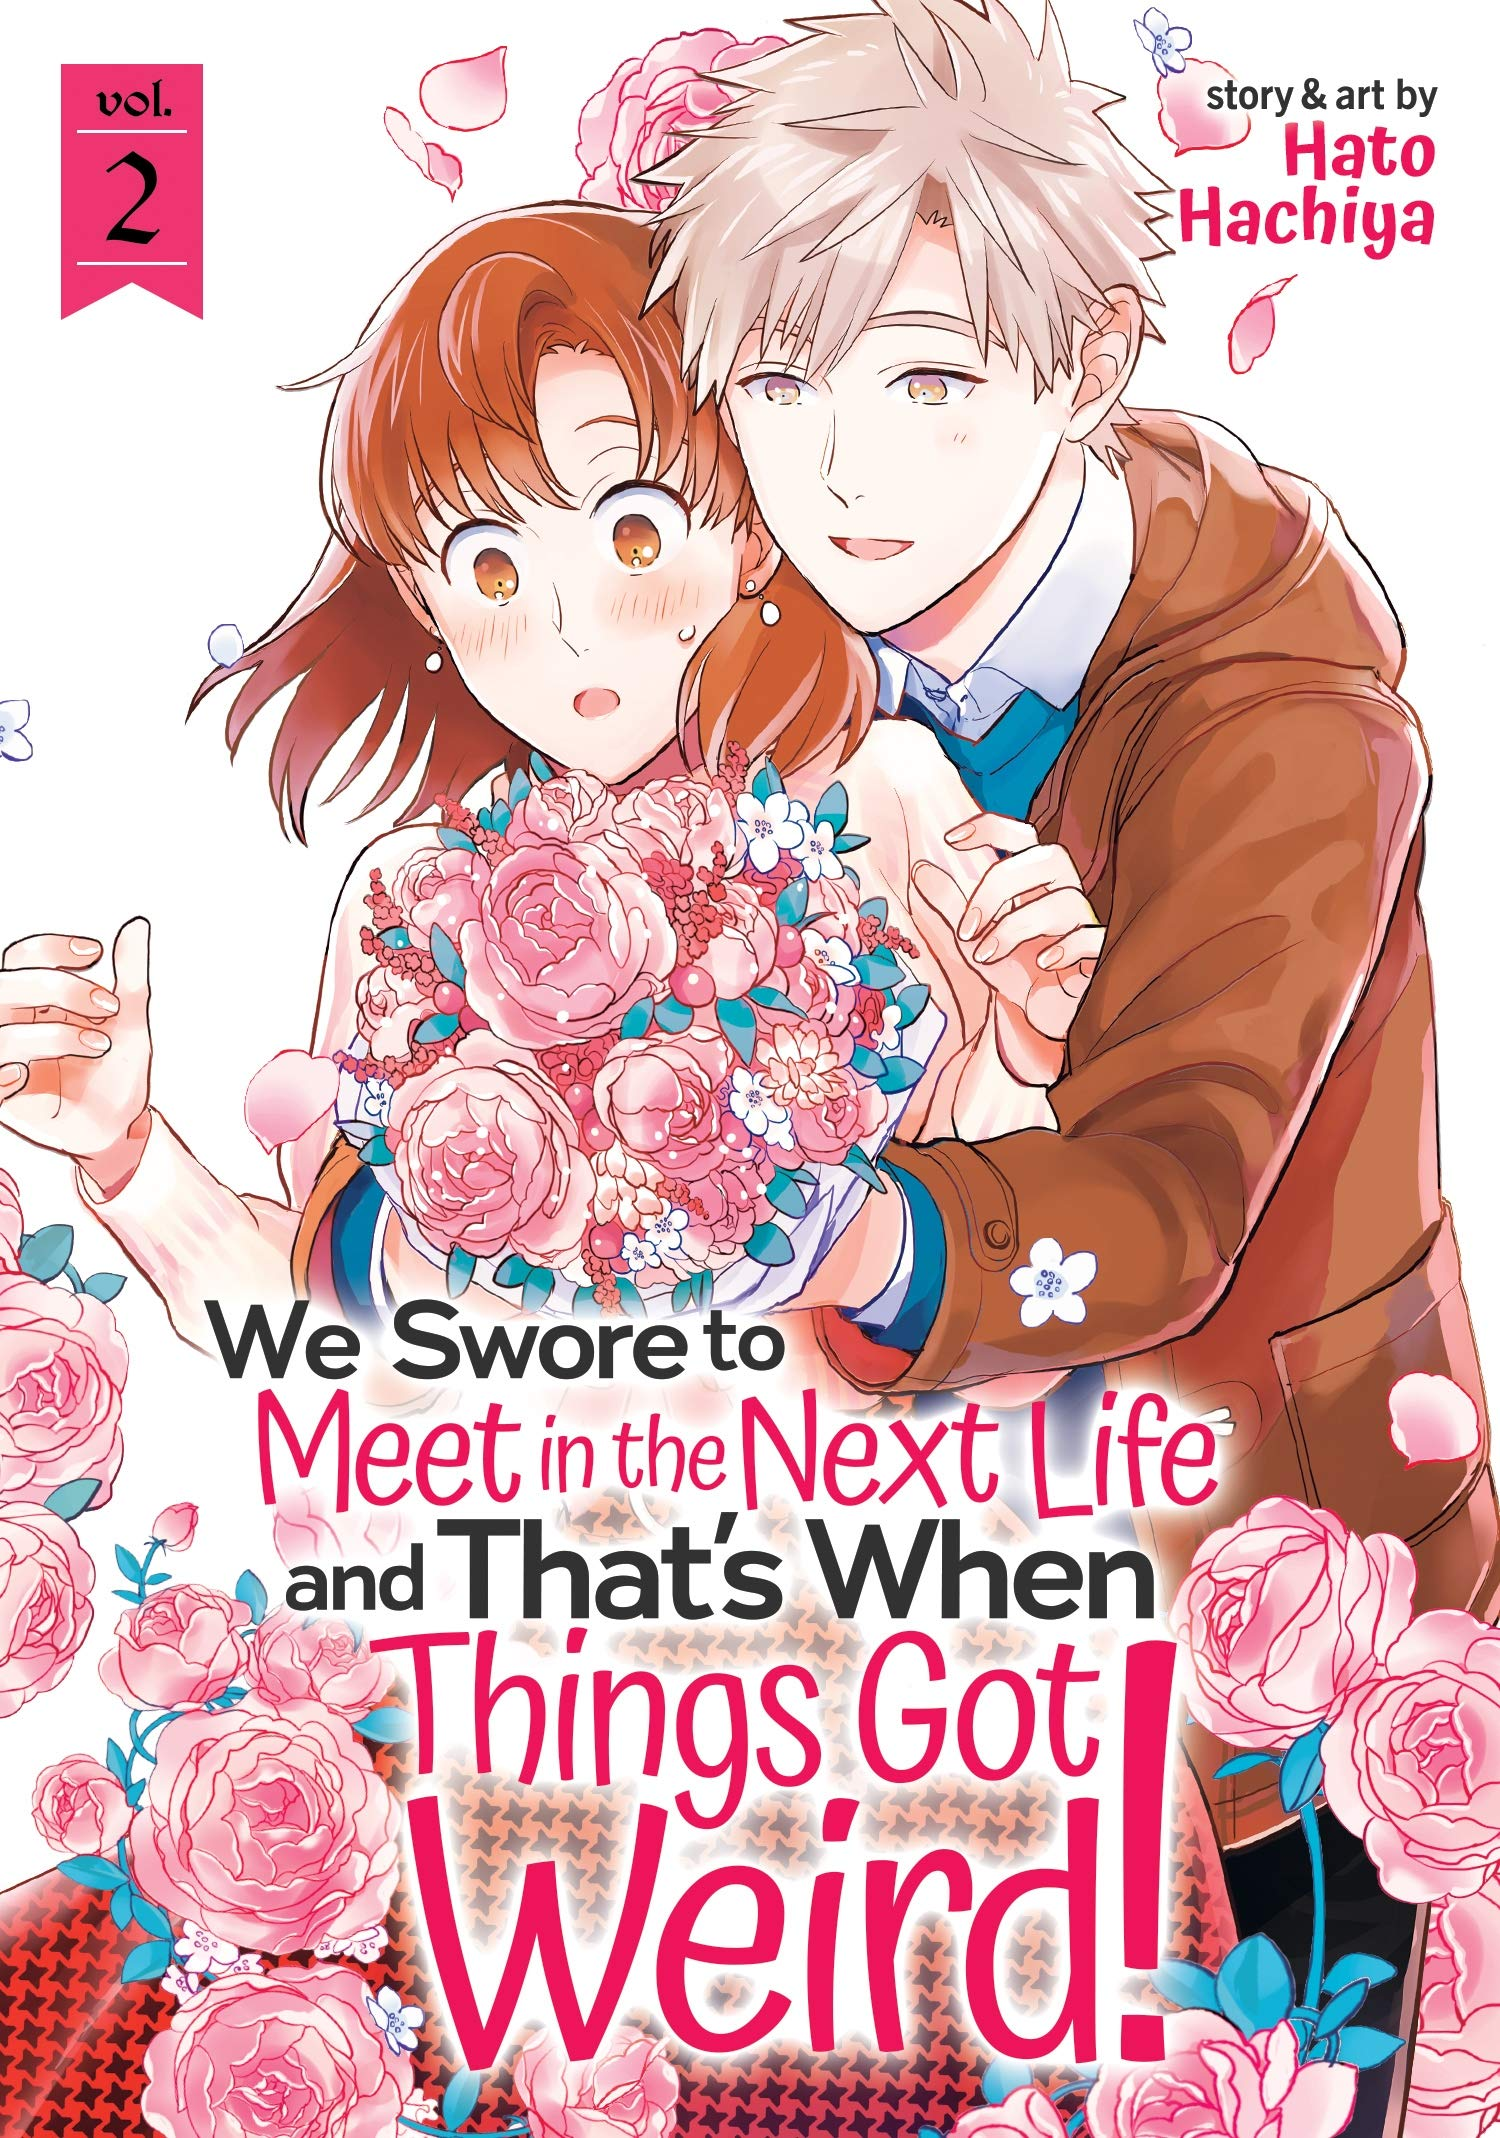 We Swore to Meet In the Next Life and That's When Things Got Weird! - Volume 2